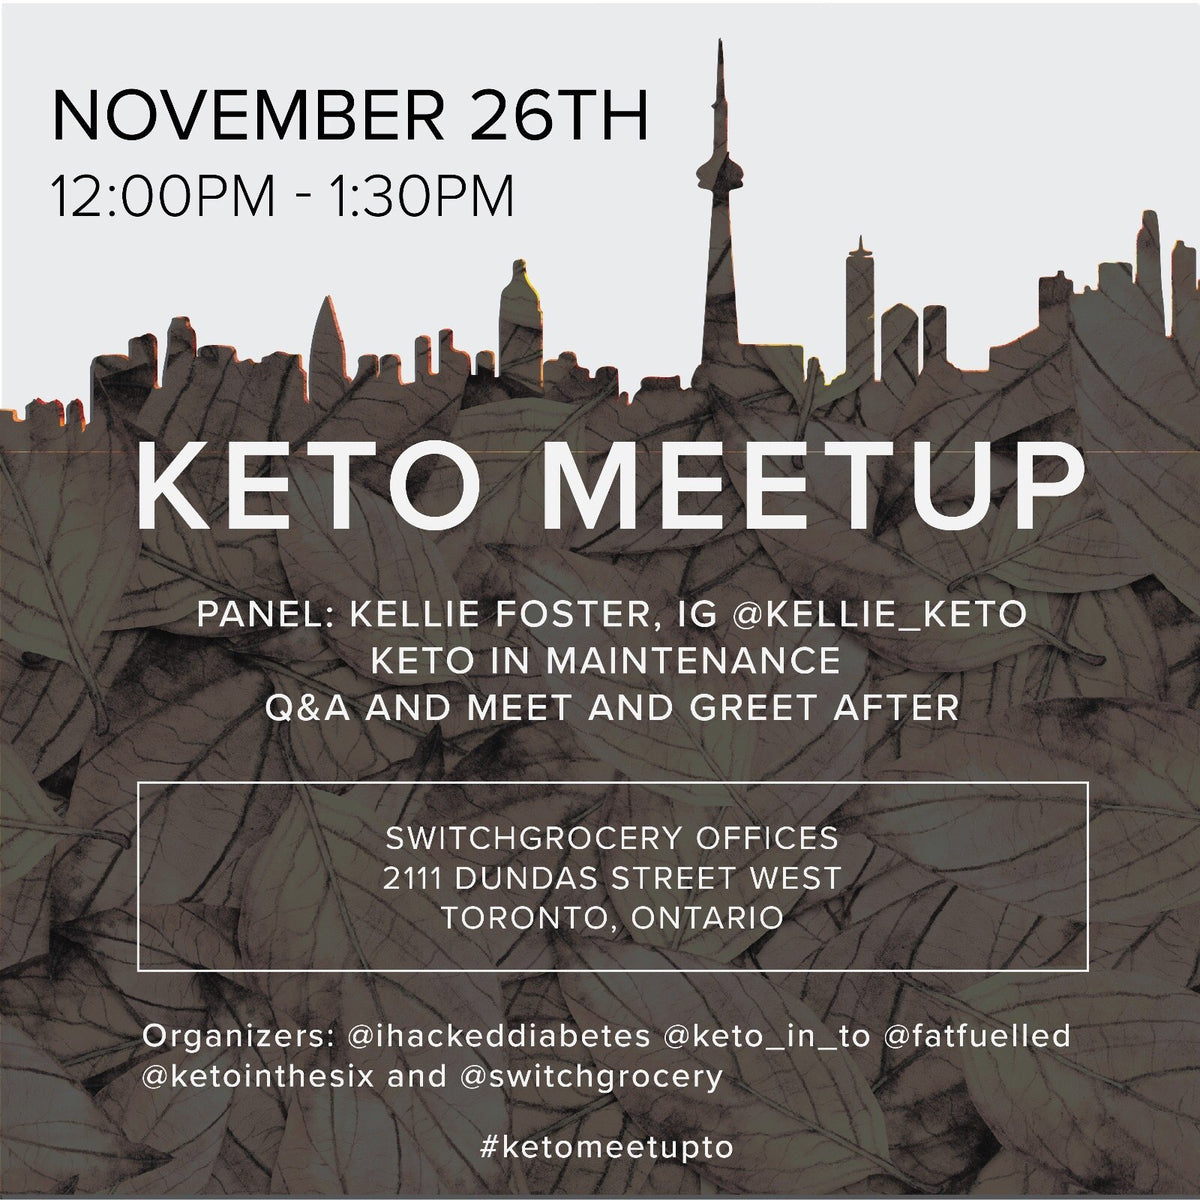 Meetup: Keto in Maintenance by Kellie Keto - losing 100lbs and keeping it off